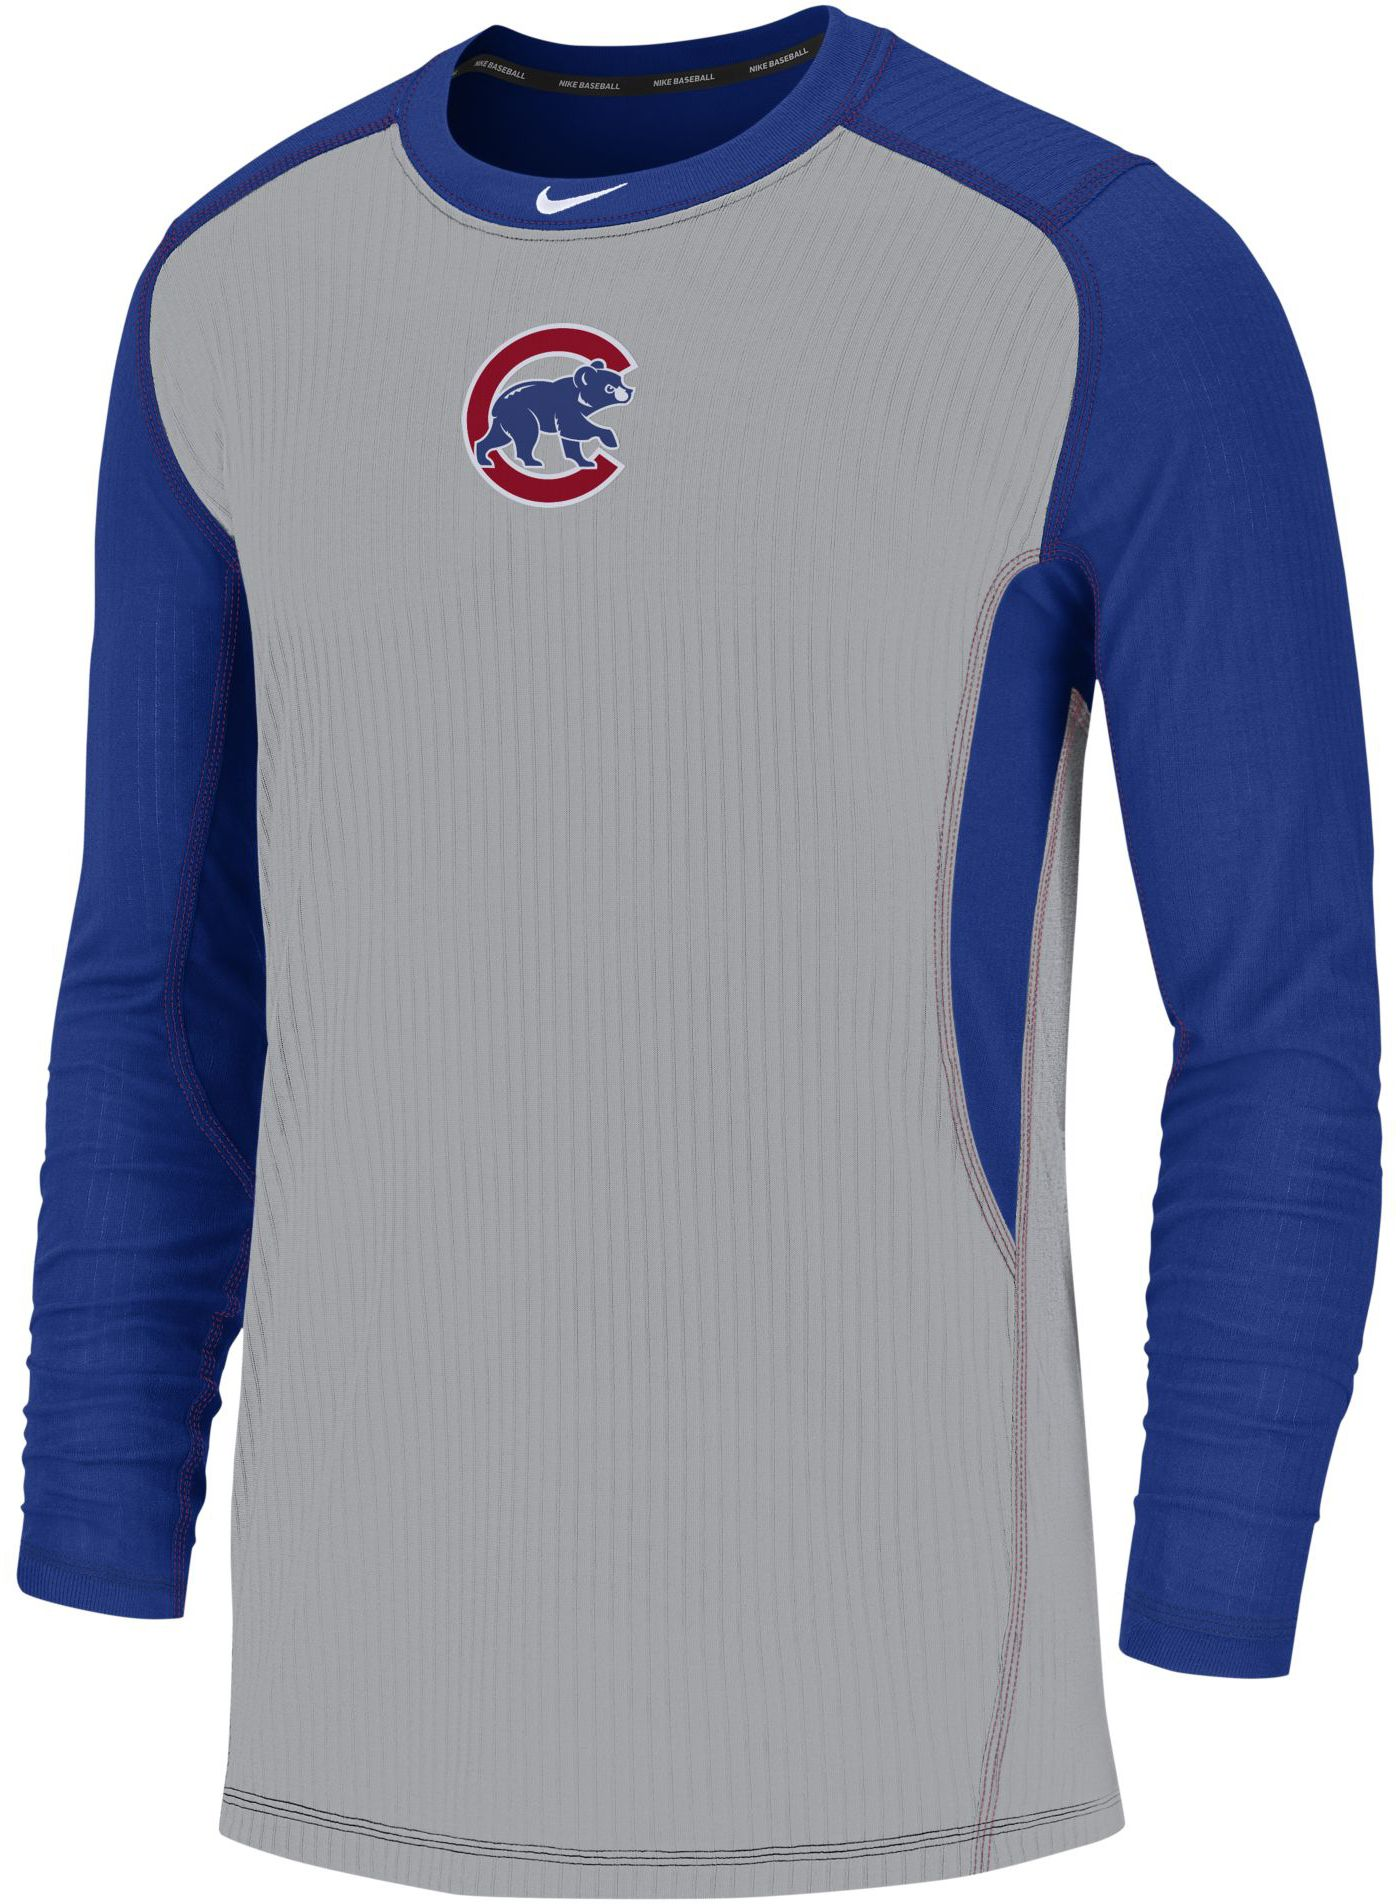 Nike Men's Chicago Cubs Authentic Collection Dri-FIT Long Sleeve Top